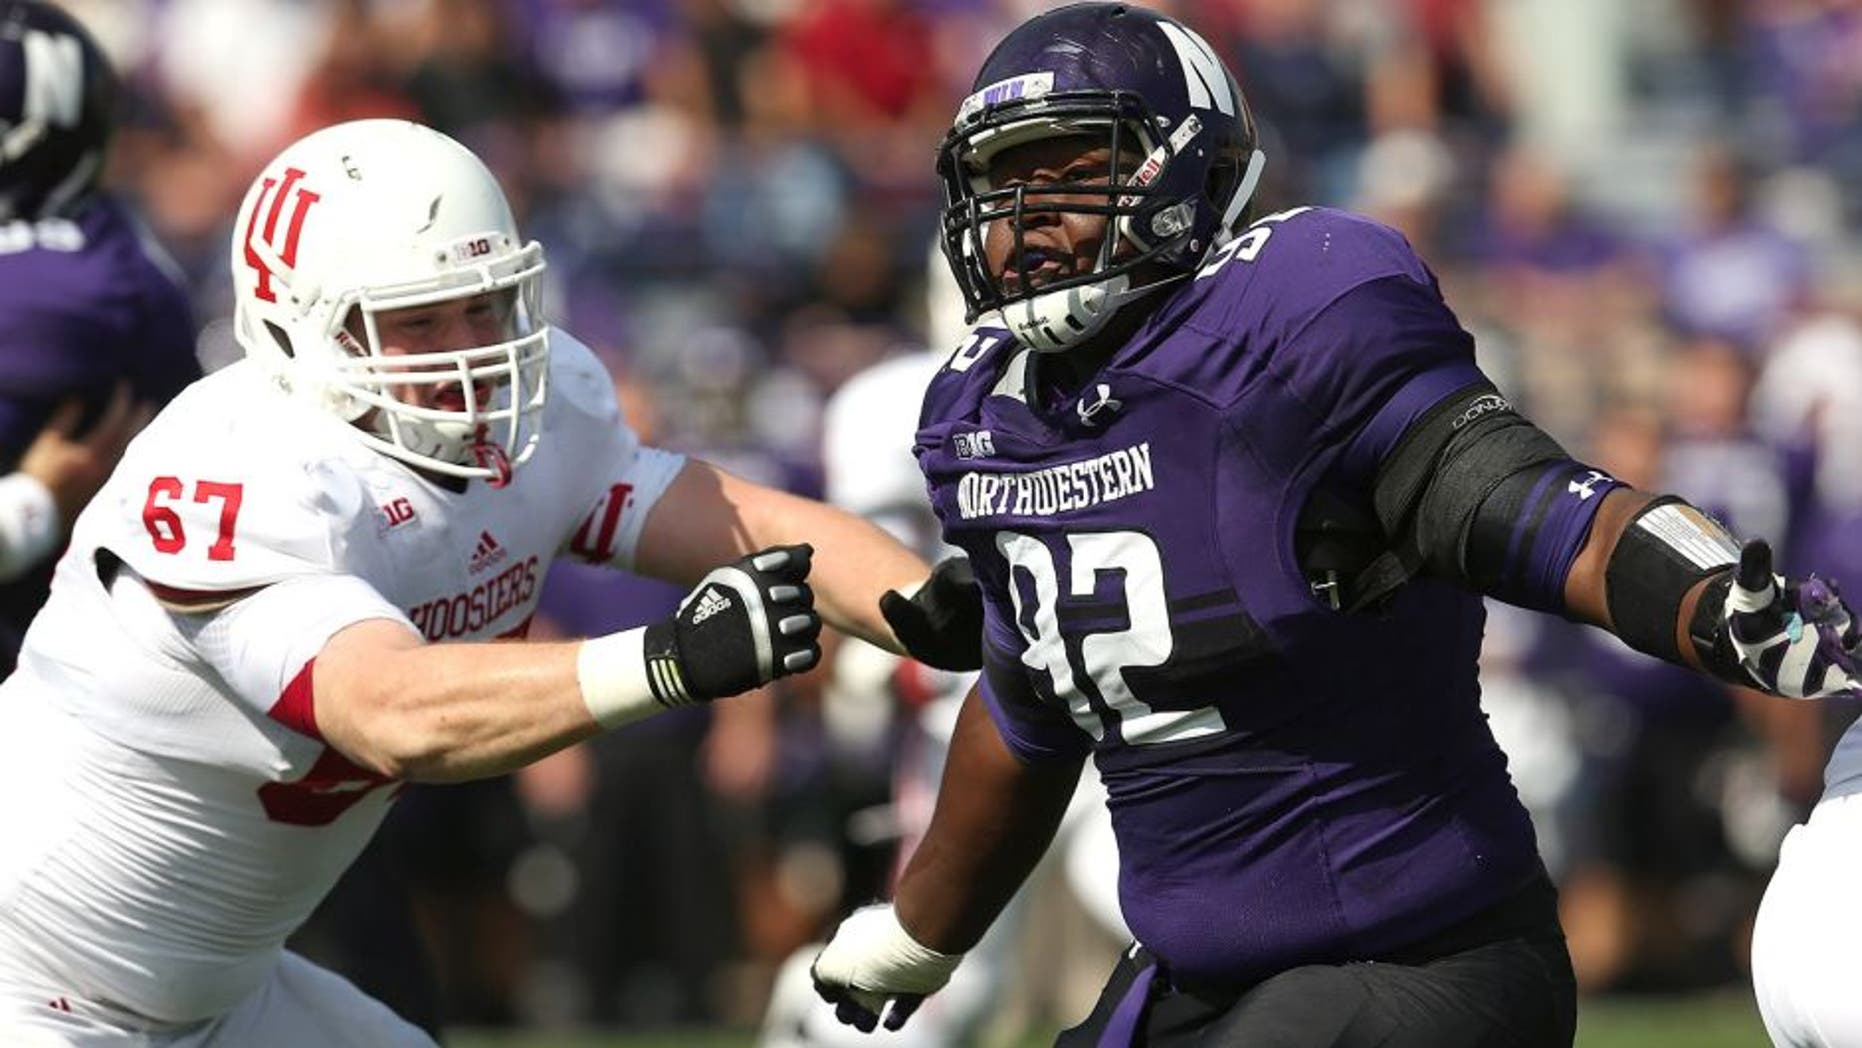 EVANSTON, IL - SEPTEMBER 29: Will Hampton #92 of the Northwestern Wildcats rushes against Dan Feeney #67 of the Indiana Hoosiers at Ryan Field on September 29, 2012 in Evanston, Illinois. Northwestern defeated Indiana 44-29. (Photo by Jonathan Daniel/Getty Images) *** Local Caption *** Will Hampton; Dan Feeney